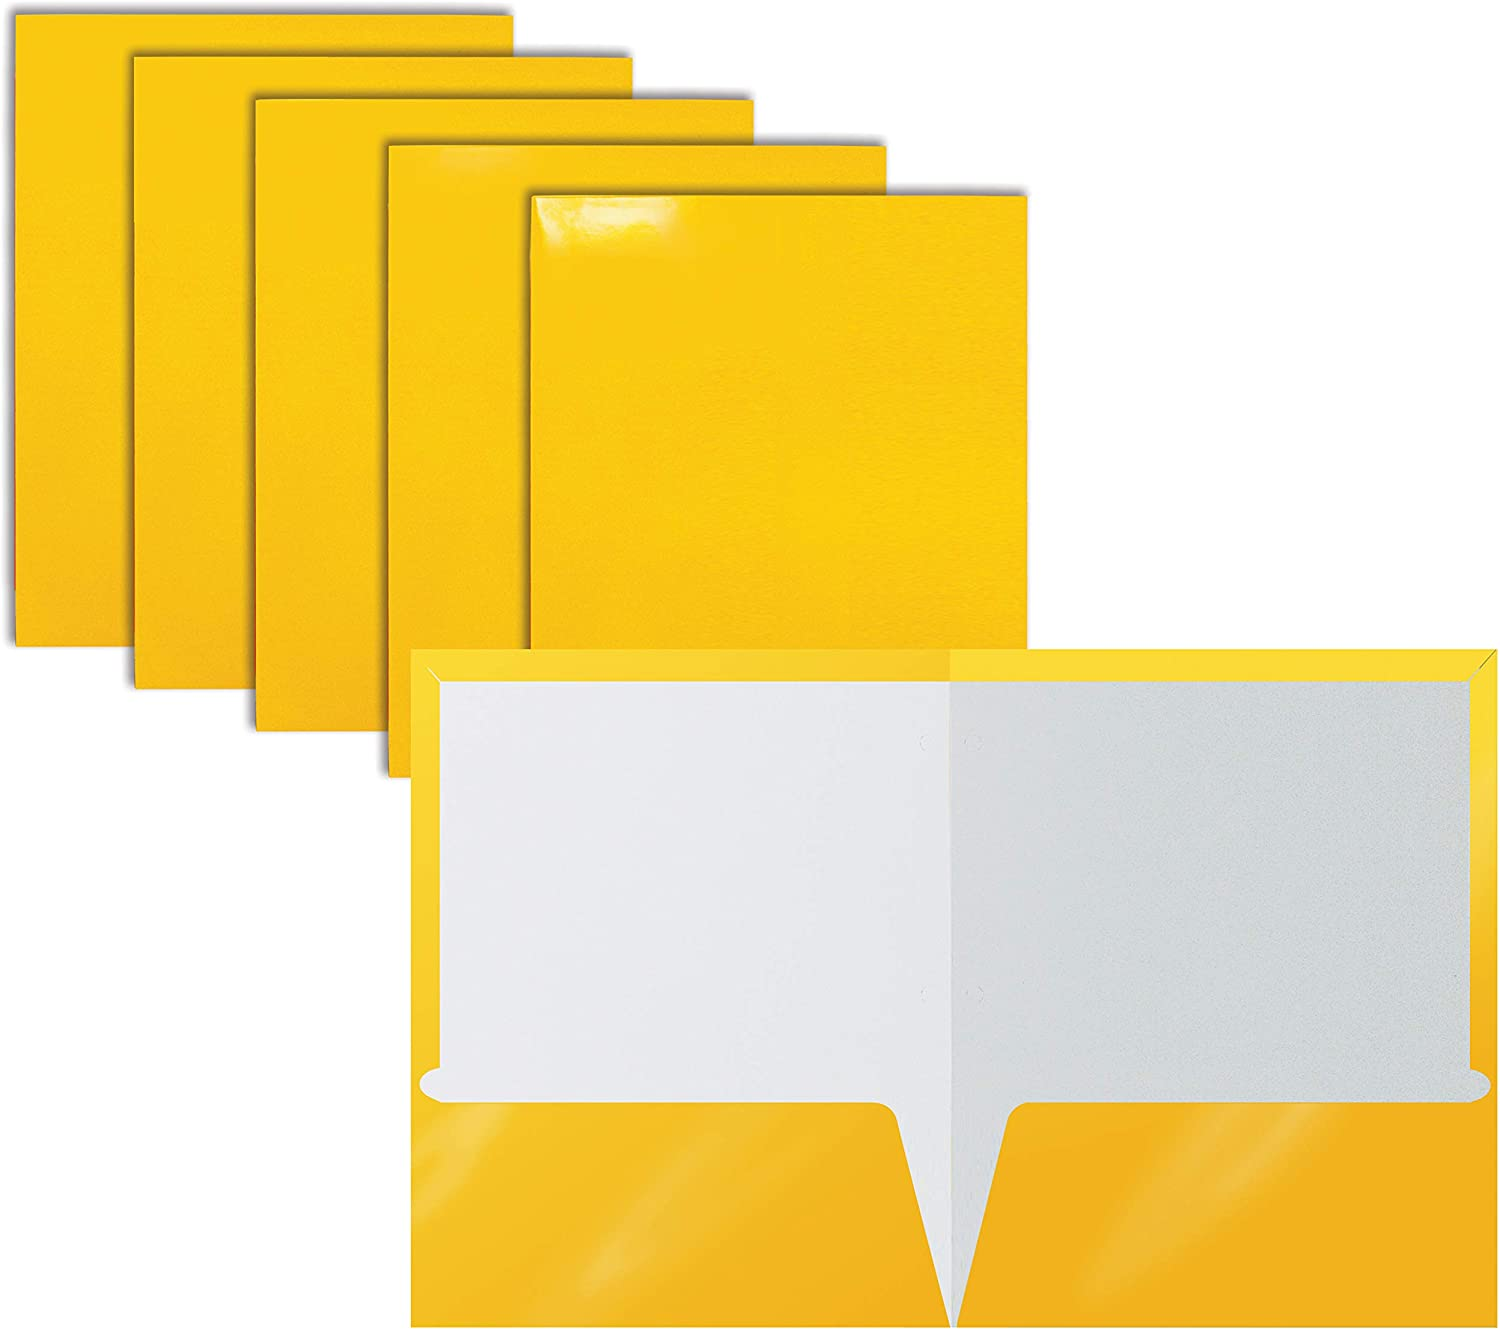 2 Pocket Glossy Laminated Yellow Paper Folders, Letter Size, 25-Pack, Yellow Paper Portfolios by Better Office Products, Box of 25 Yellow Folders